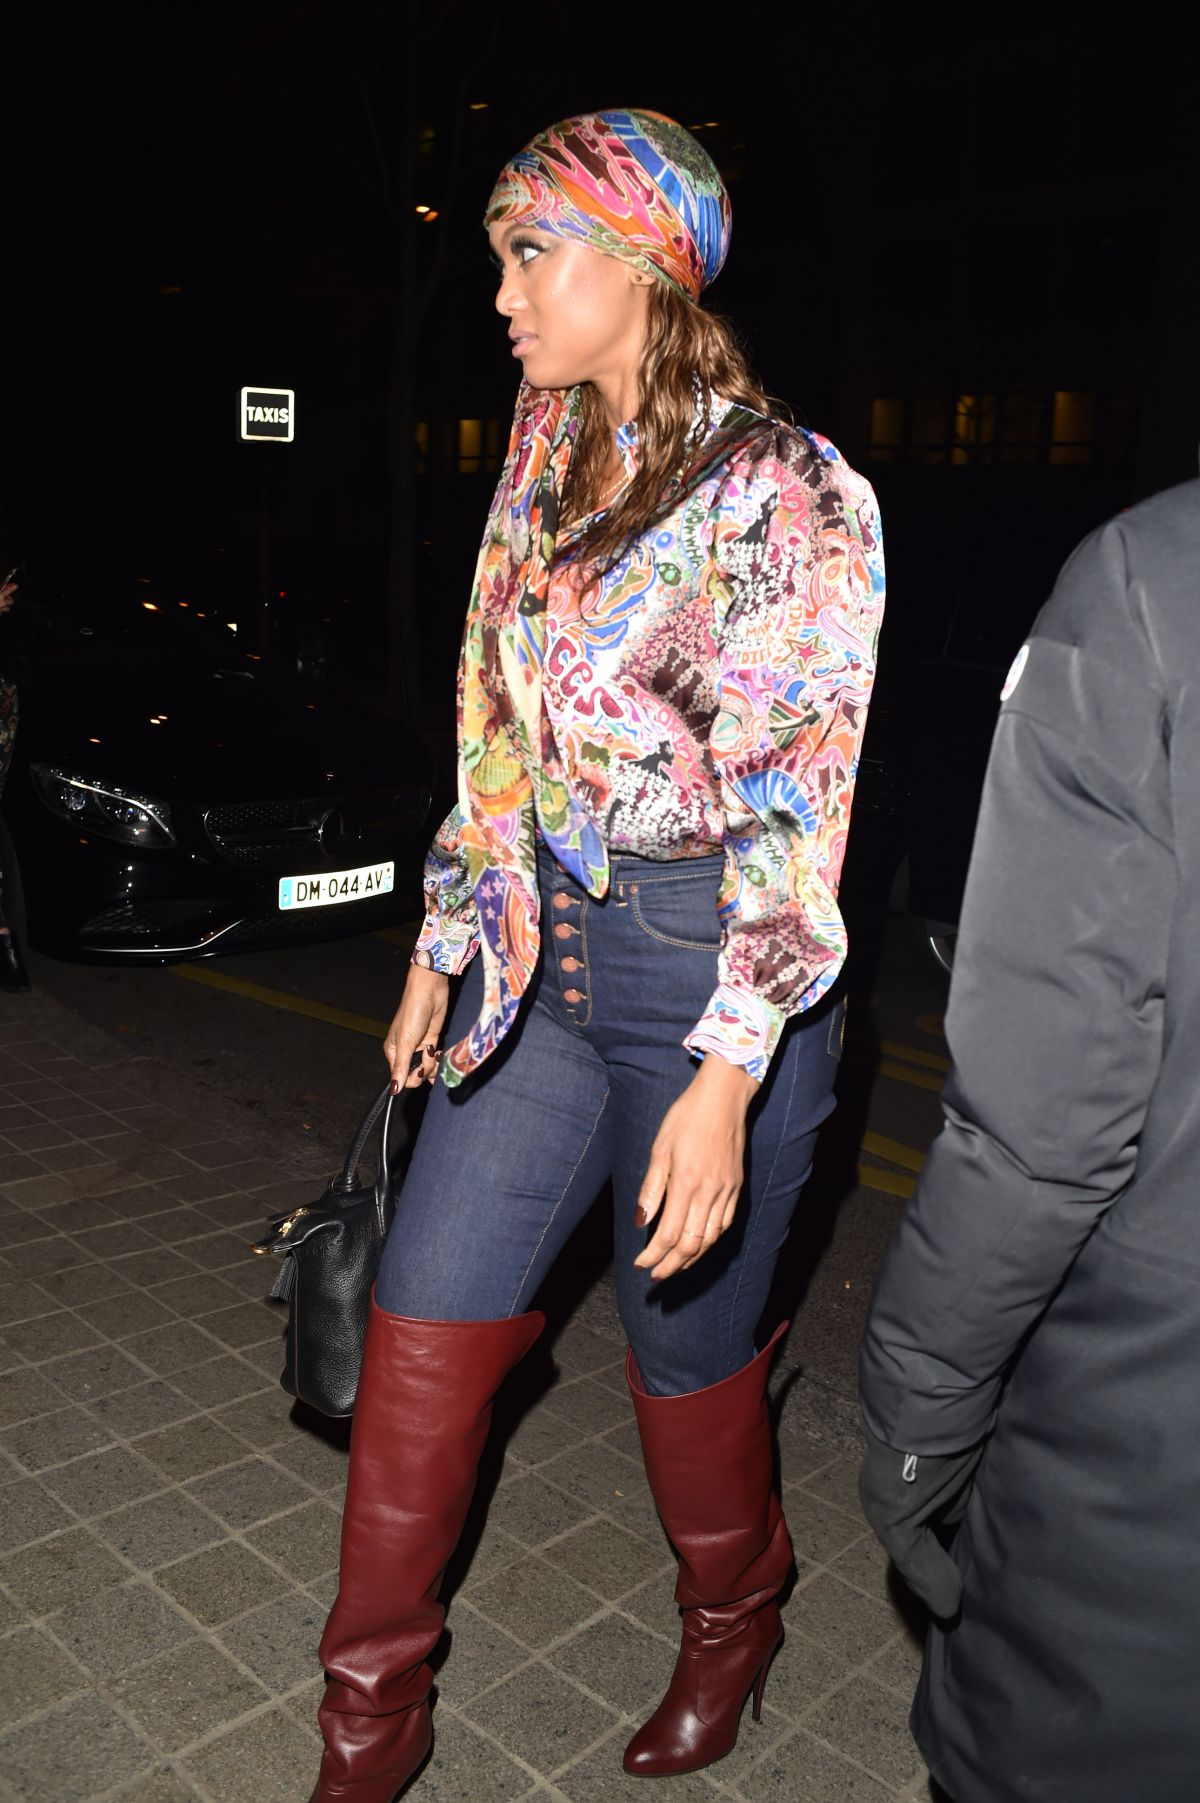 de969d79 TRYA BANKS Arrives at Tommy Hilfiger Tommynow Spring 2019: Starring Tommy x  Xendaya Premieres in